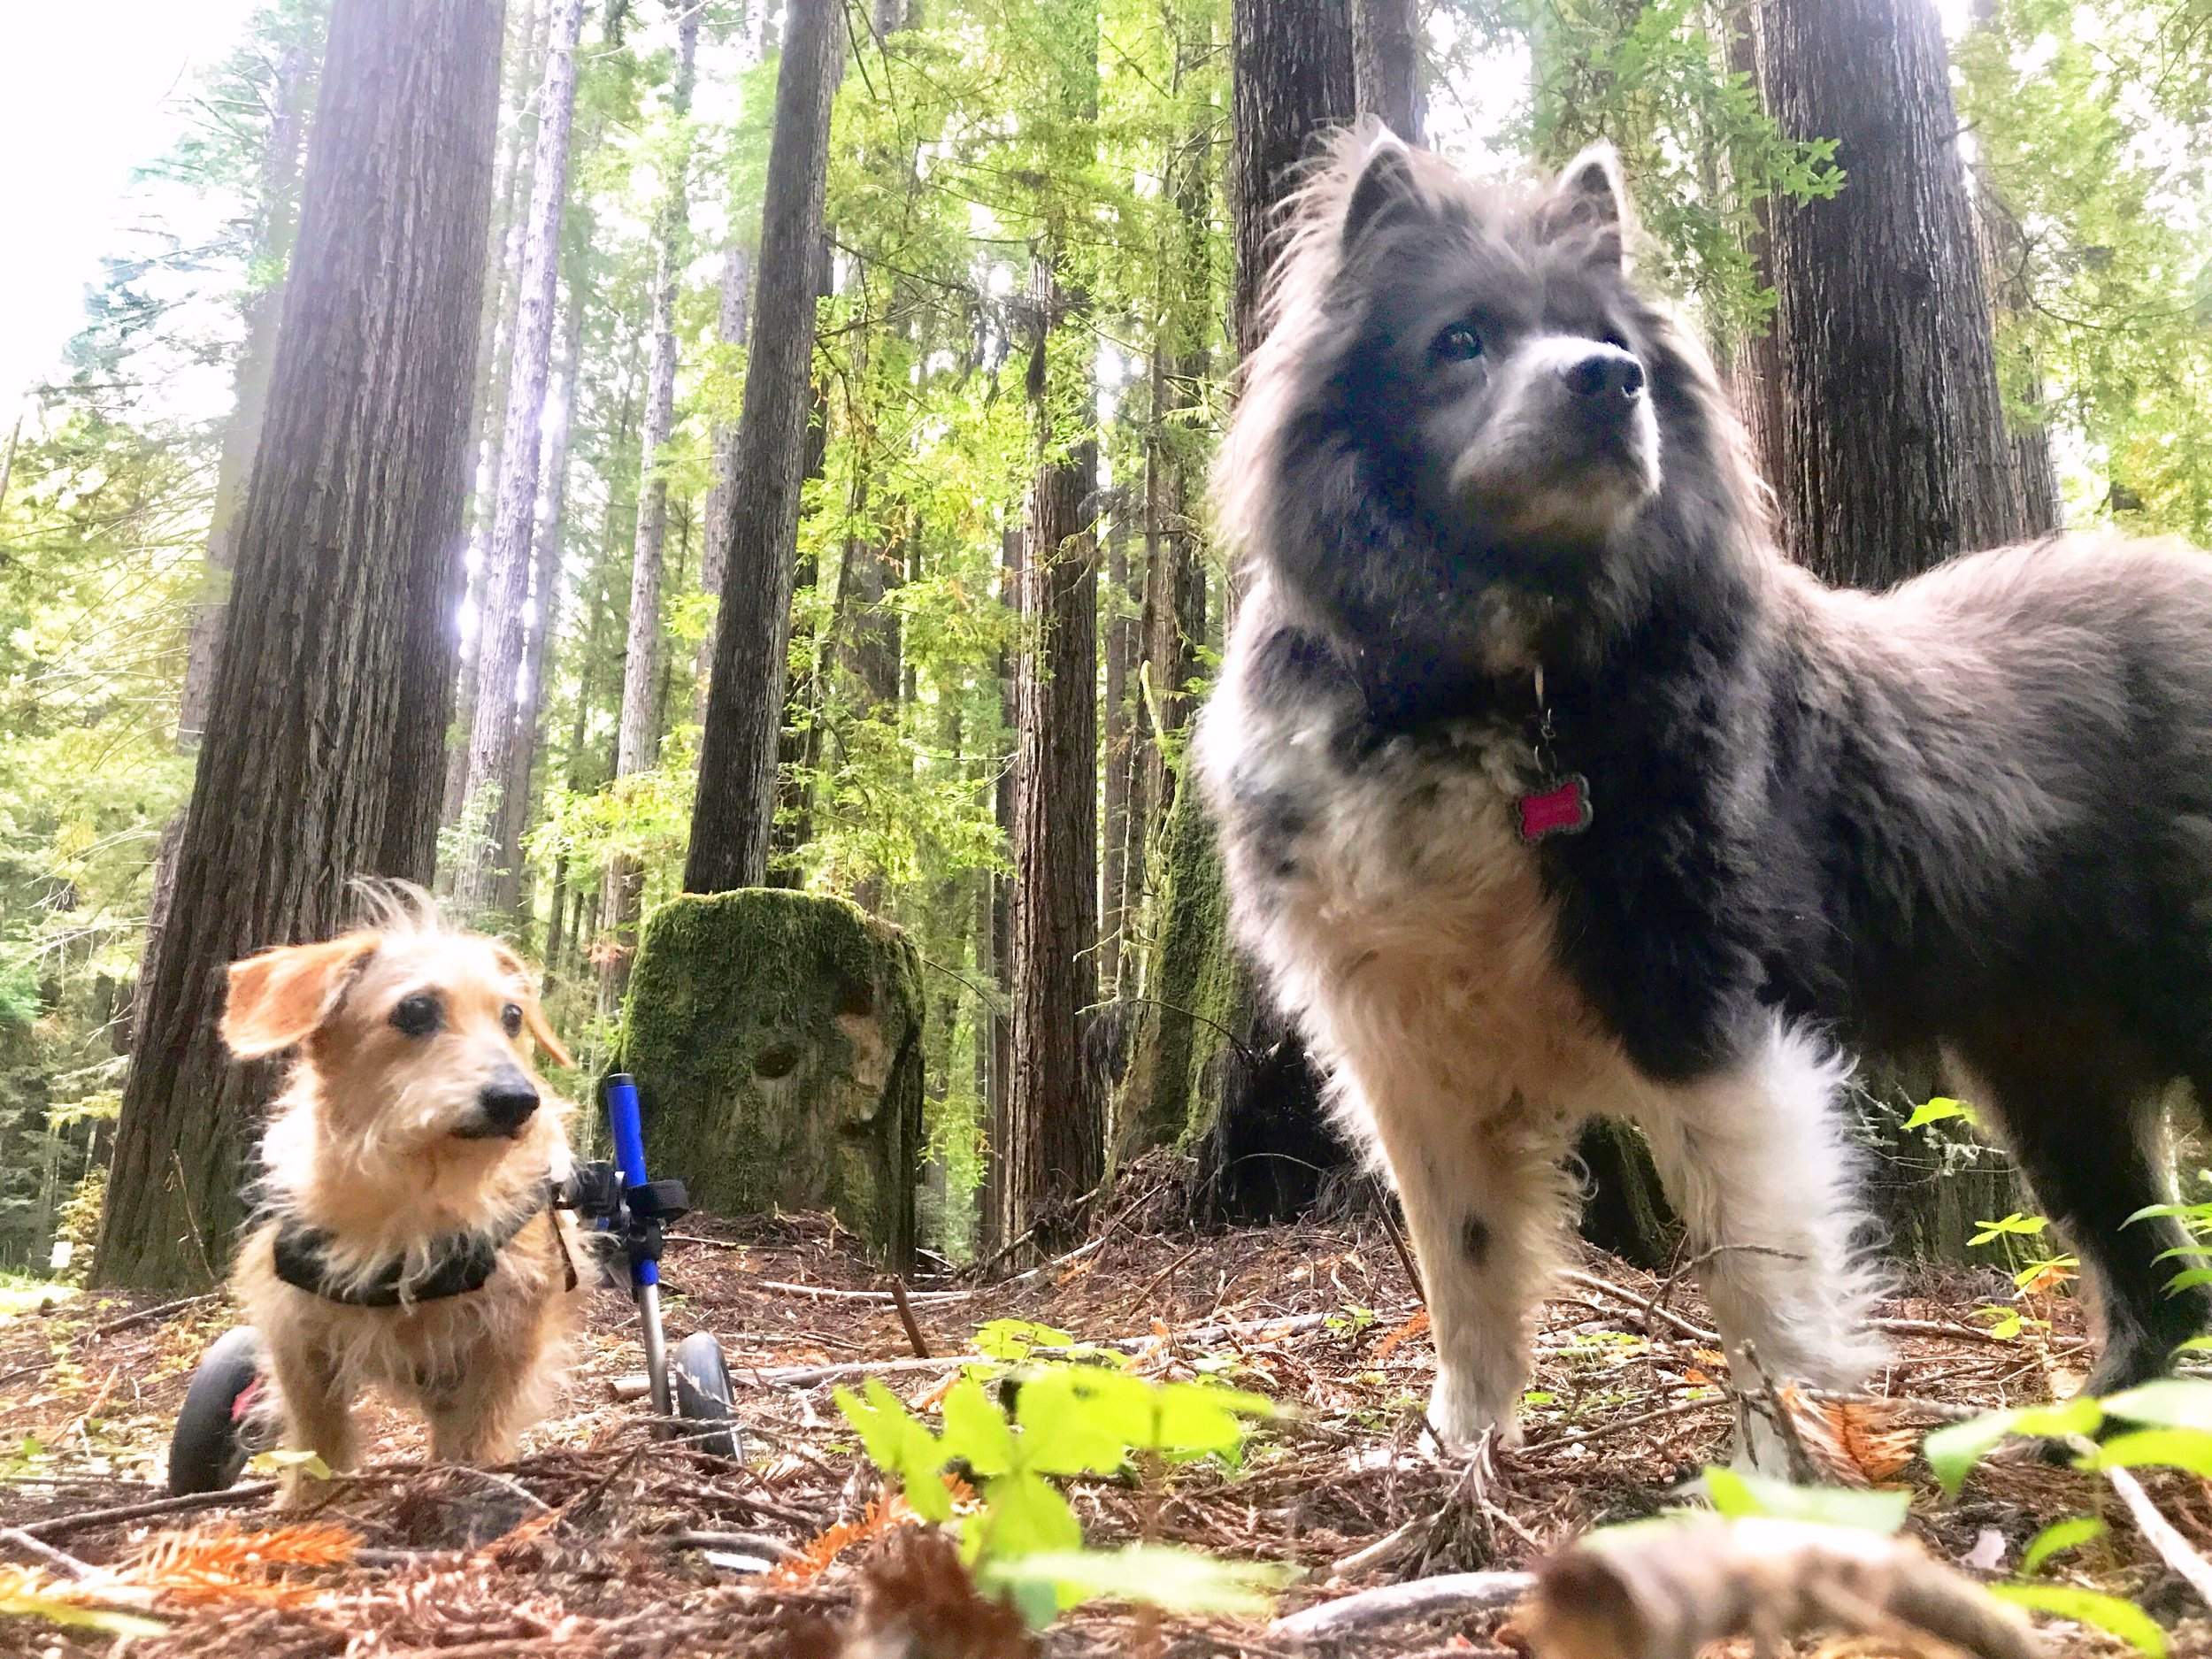 Charlie and his sister Ziggy Marie exploring a Redwood Forrest.